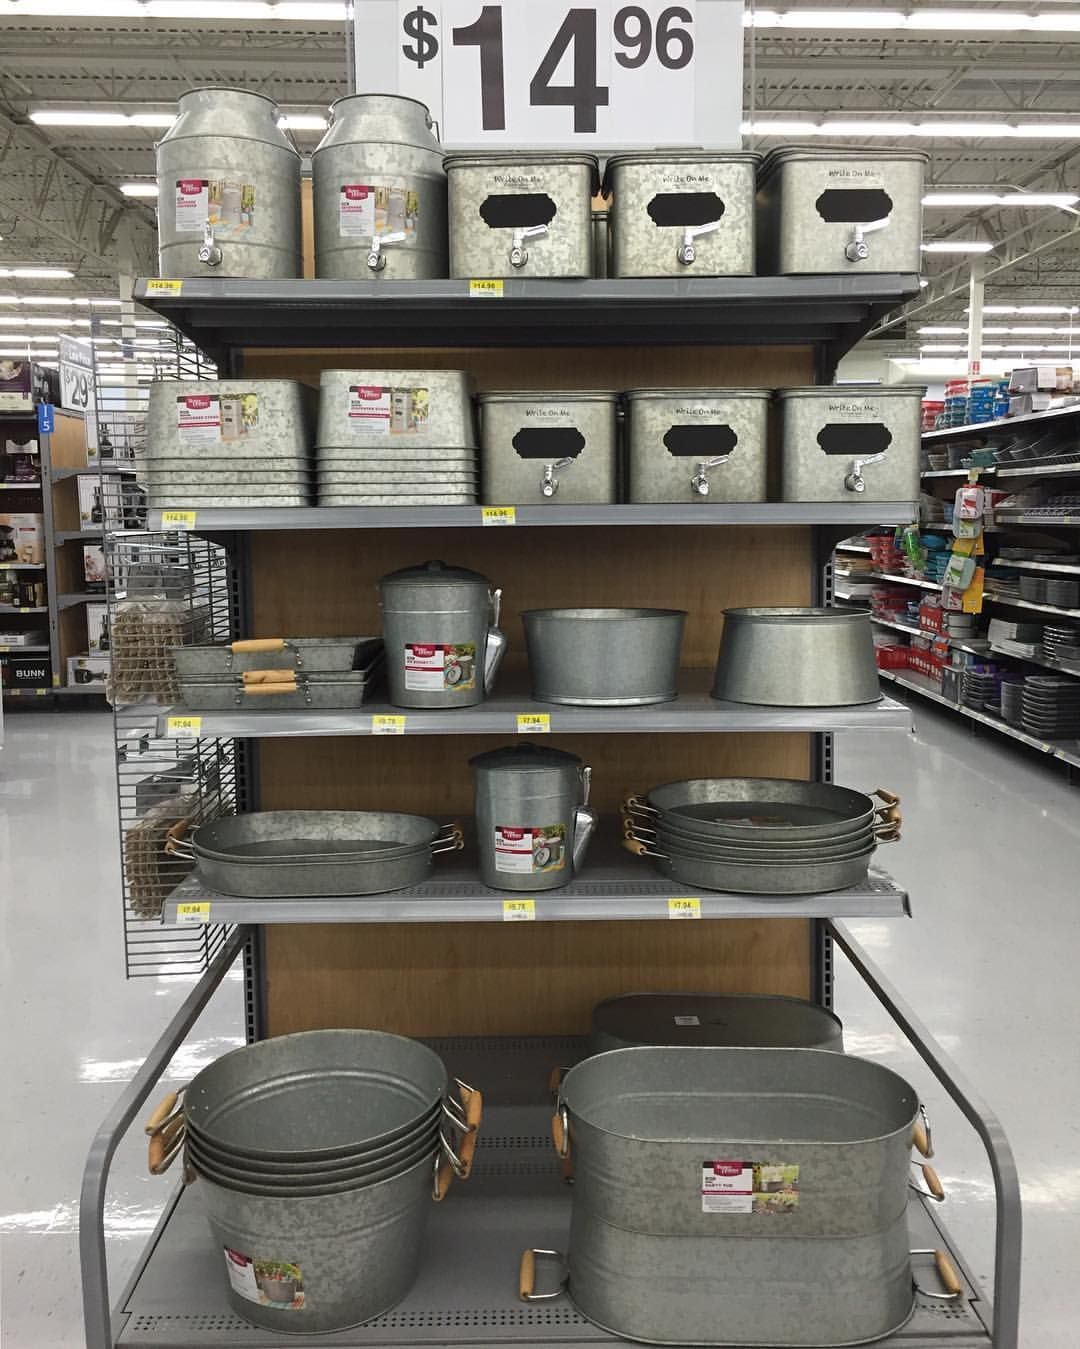 For all things galvanized go to WalMart and check out